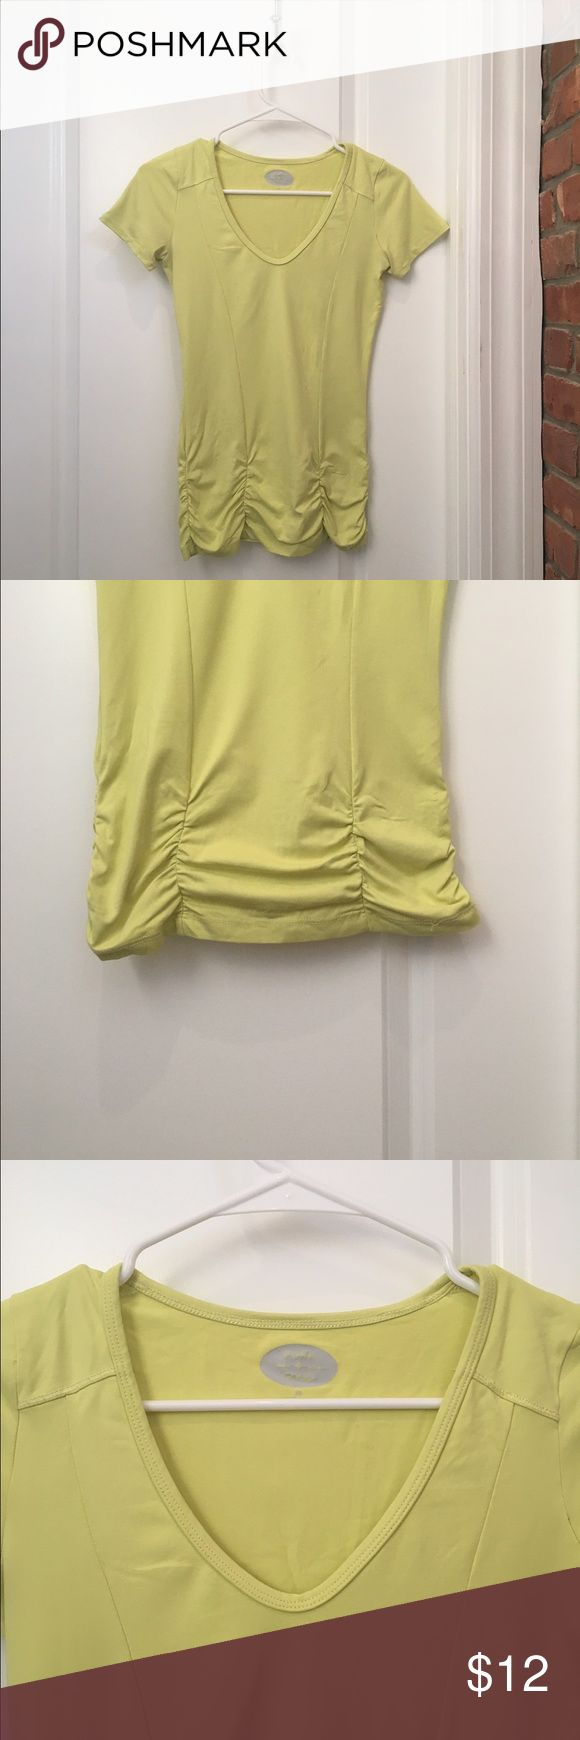 Anthropologie Pure + Good Workout Top From Anthropologie's exclusive workout line, Pure + Good. V-neck, cinched waist, stretchy, in a peppy lemon-lime color. Perfect for hiking, running, and yoga, but also for a casual top. Extremely soft and comfortable. Anthropologie Tops Tees - Short Sleeve